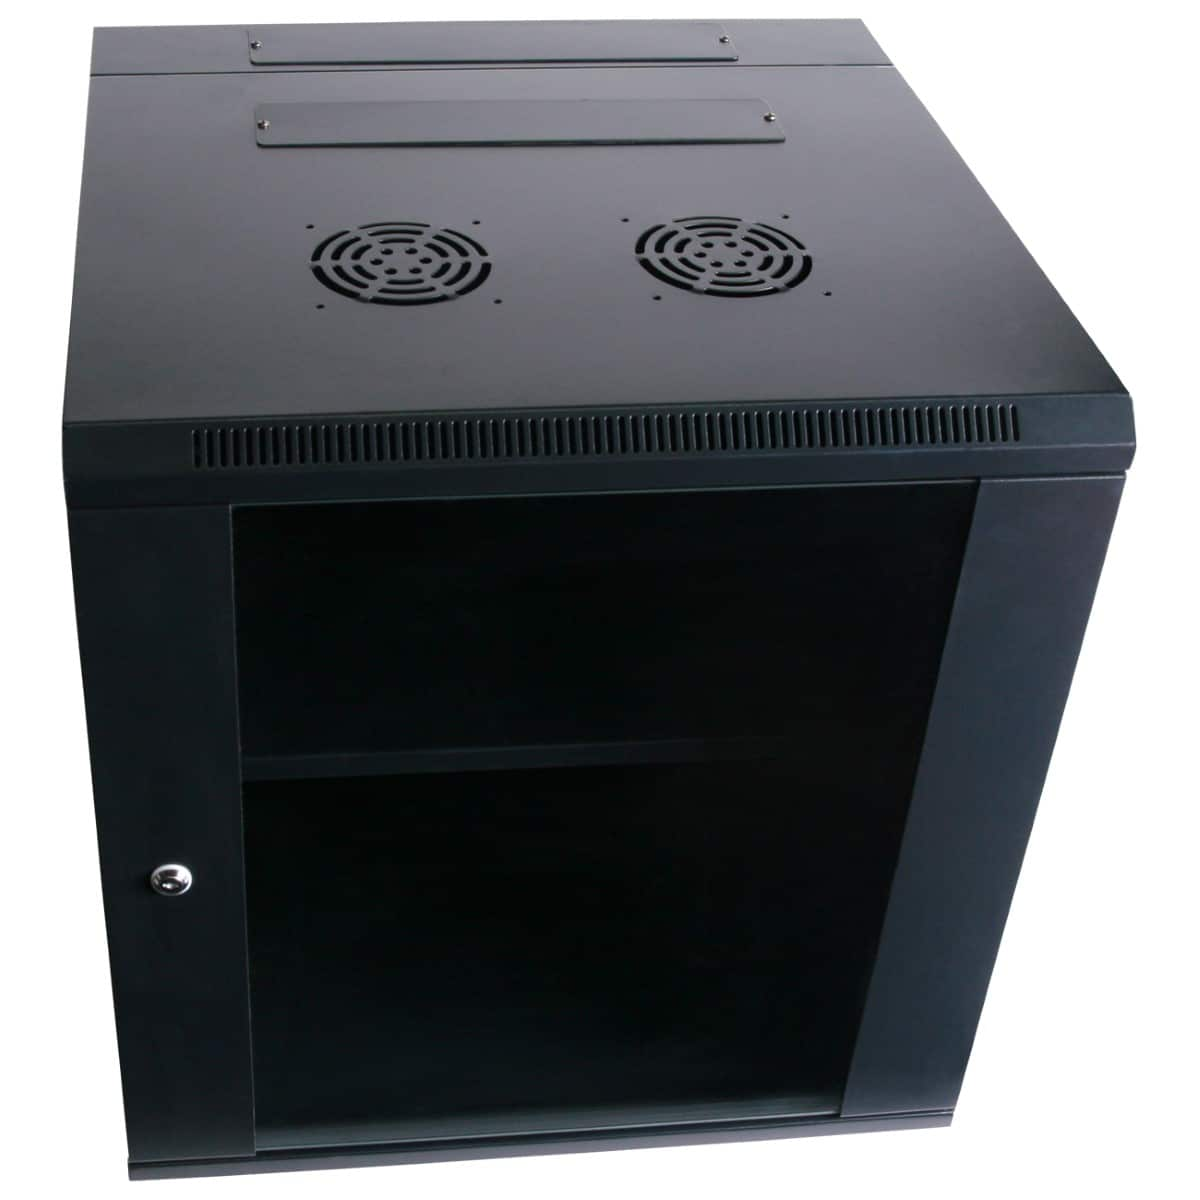 12RU 600mm Deep Wall Mount Cabinet + Swing Frame